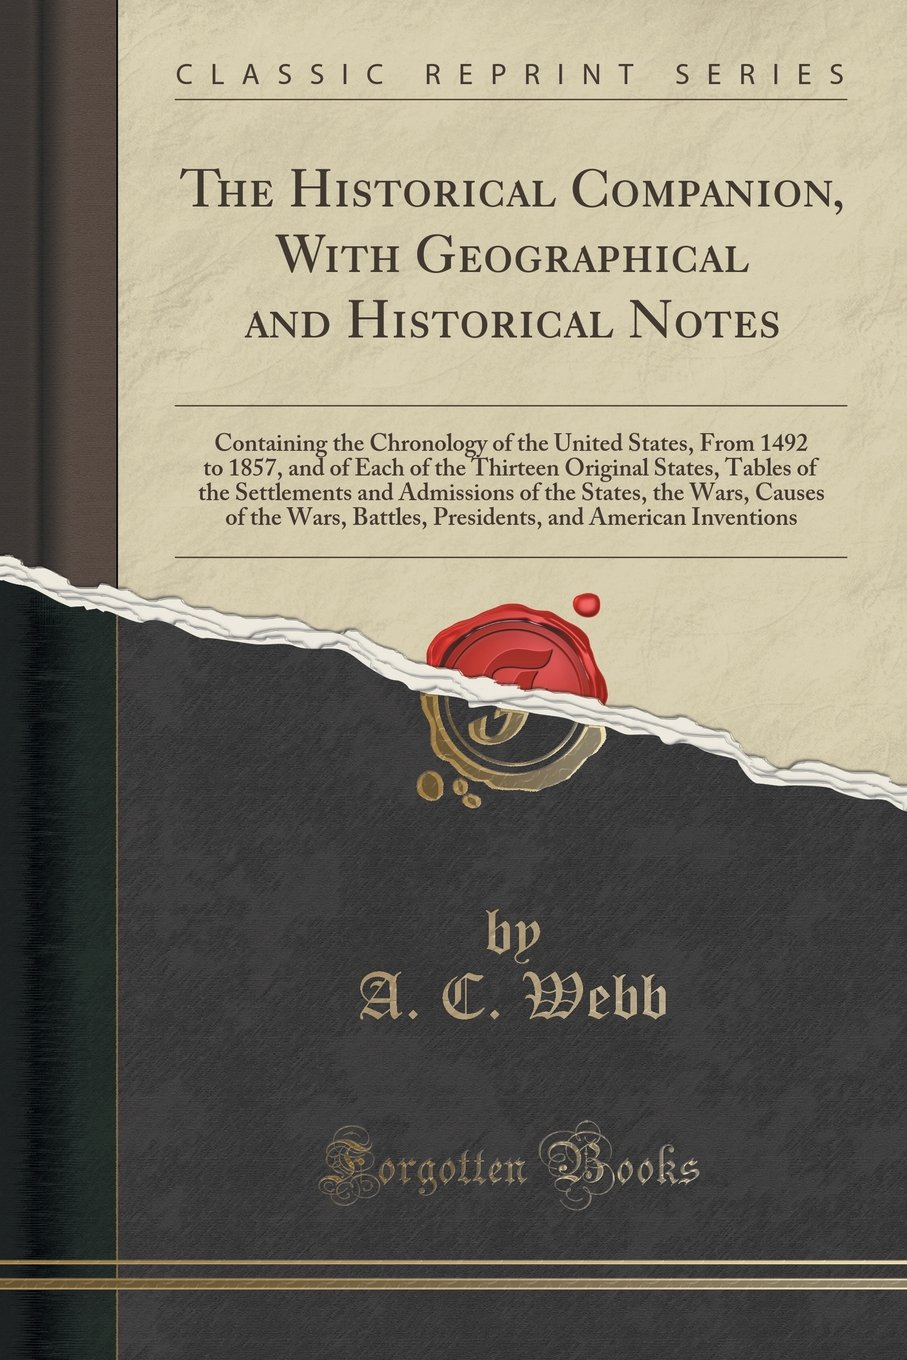 Read Online The Historical Companion, With Geographical and Historical Notes: Containing the Chronology of the United States, From 1492 to 1857, and of Each of ... of the States, the Wars, Causes of t pdf